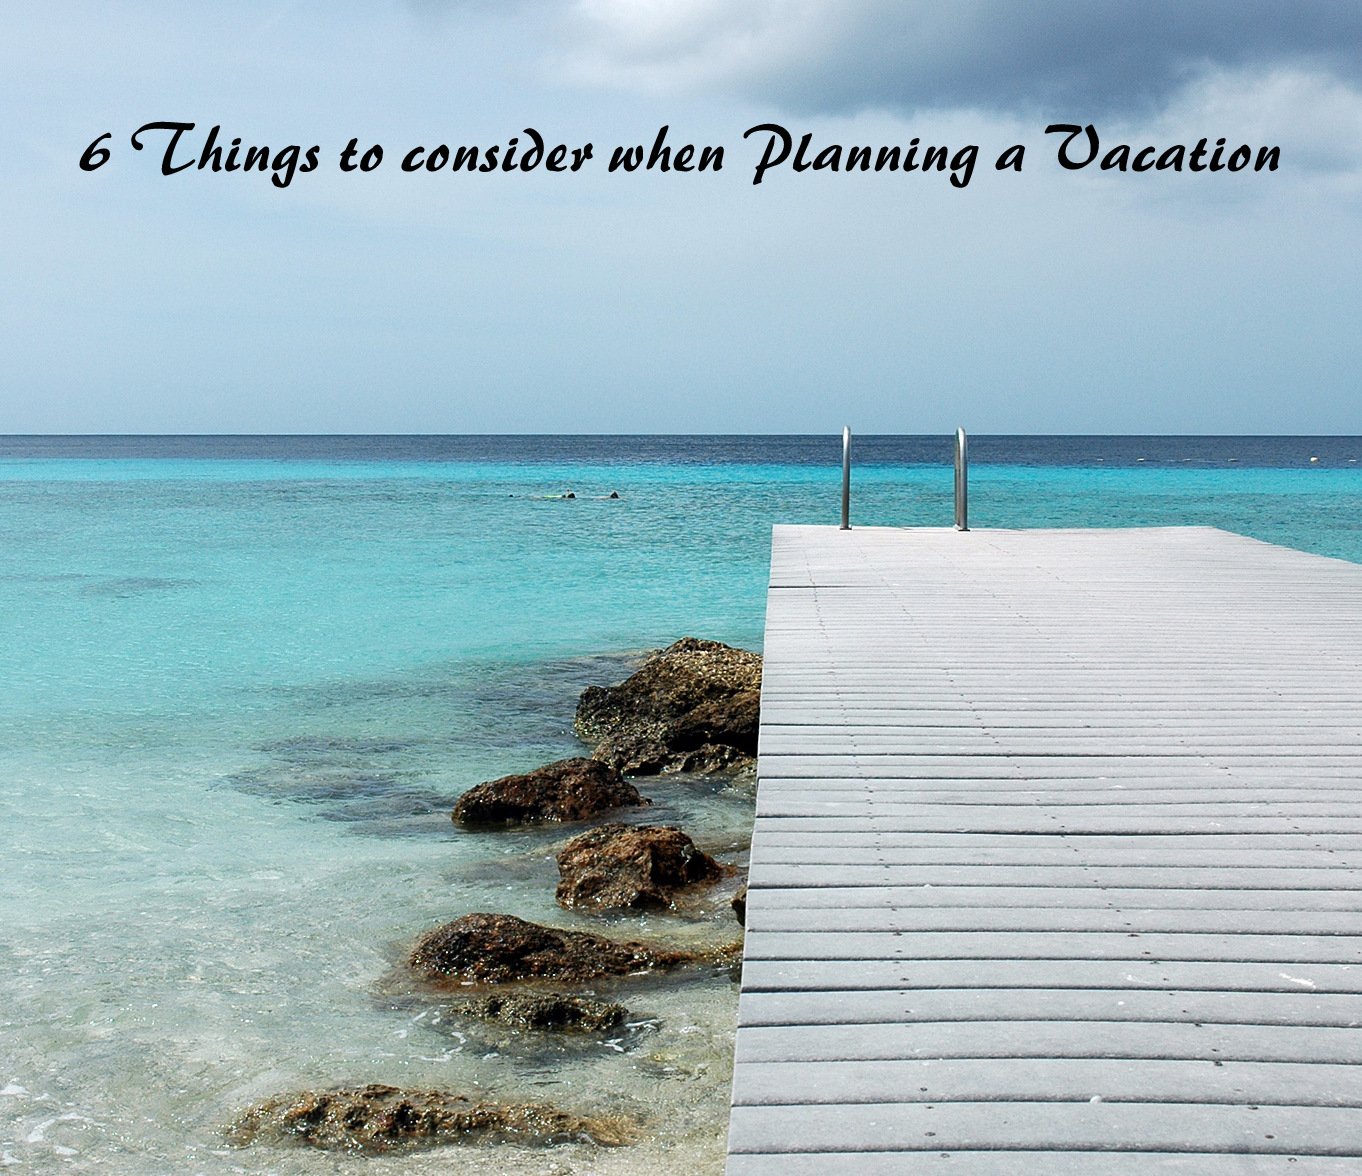 6 Things to consider when planning a vacation